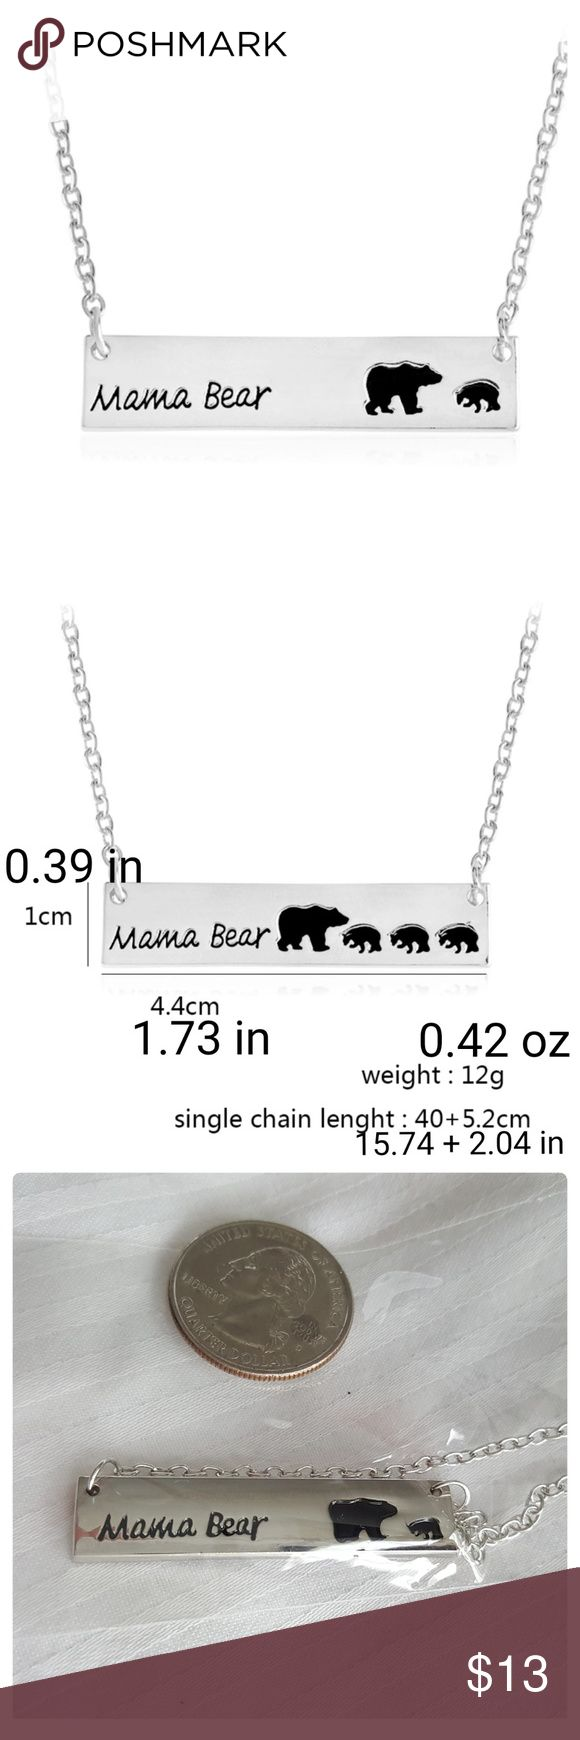 "JUST IN 💕 Mama Bear + 1 cub Necklace Metal: zinc alloy. Nickel,  lead and cadmium free. Weight: 0.042 oz. Size: 0.39"" x 1.73"".   Chain length: 15.74"" plus 2.04"" extension.   Great stocking stuffer gift! Jewelry Necklaces"